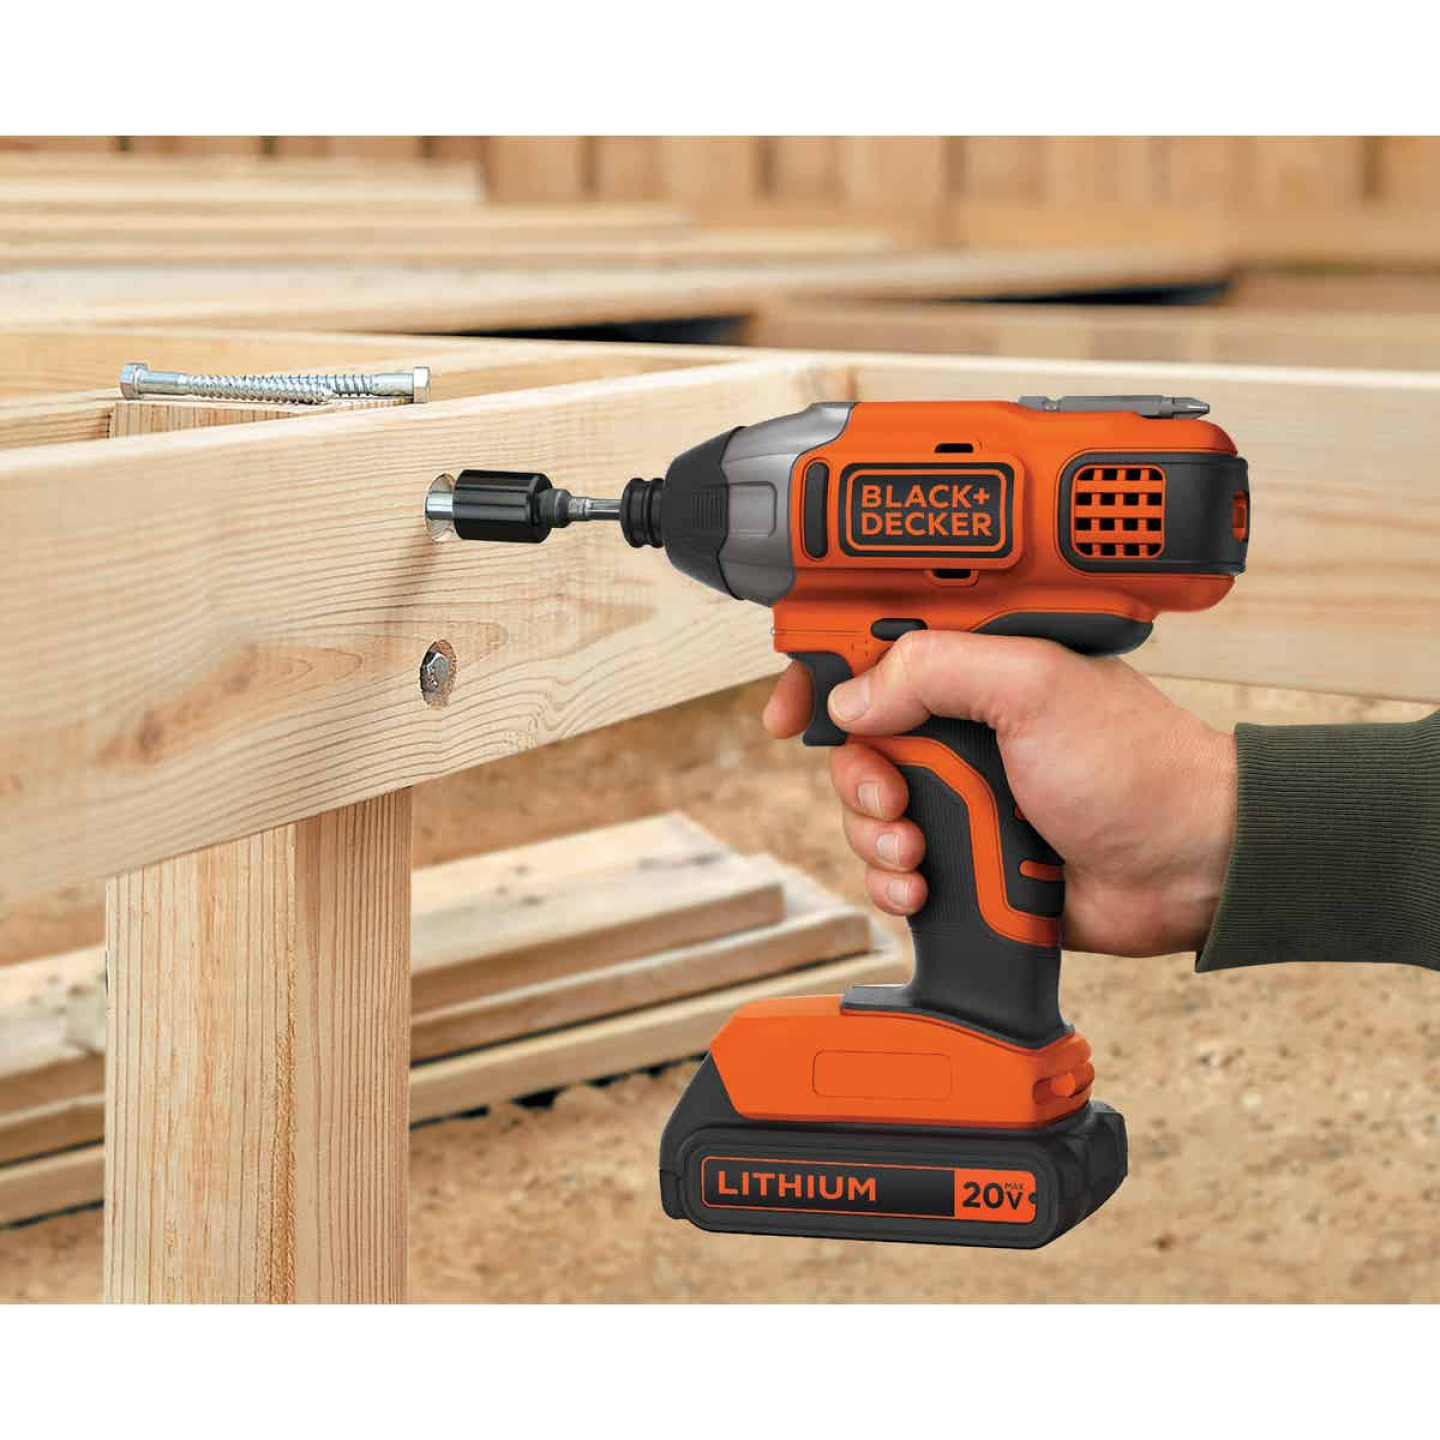 Black & Decker 20 Volt MAX Lithium-Ion 1/4 In. Hex Cordless Impact Driver Kit Image 2